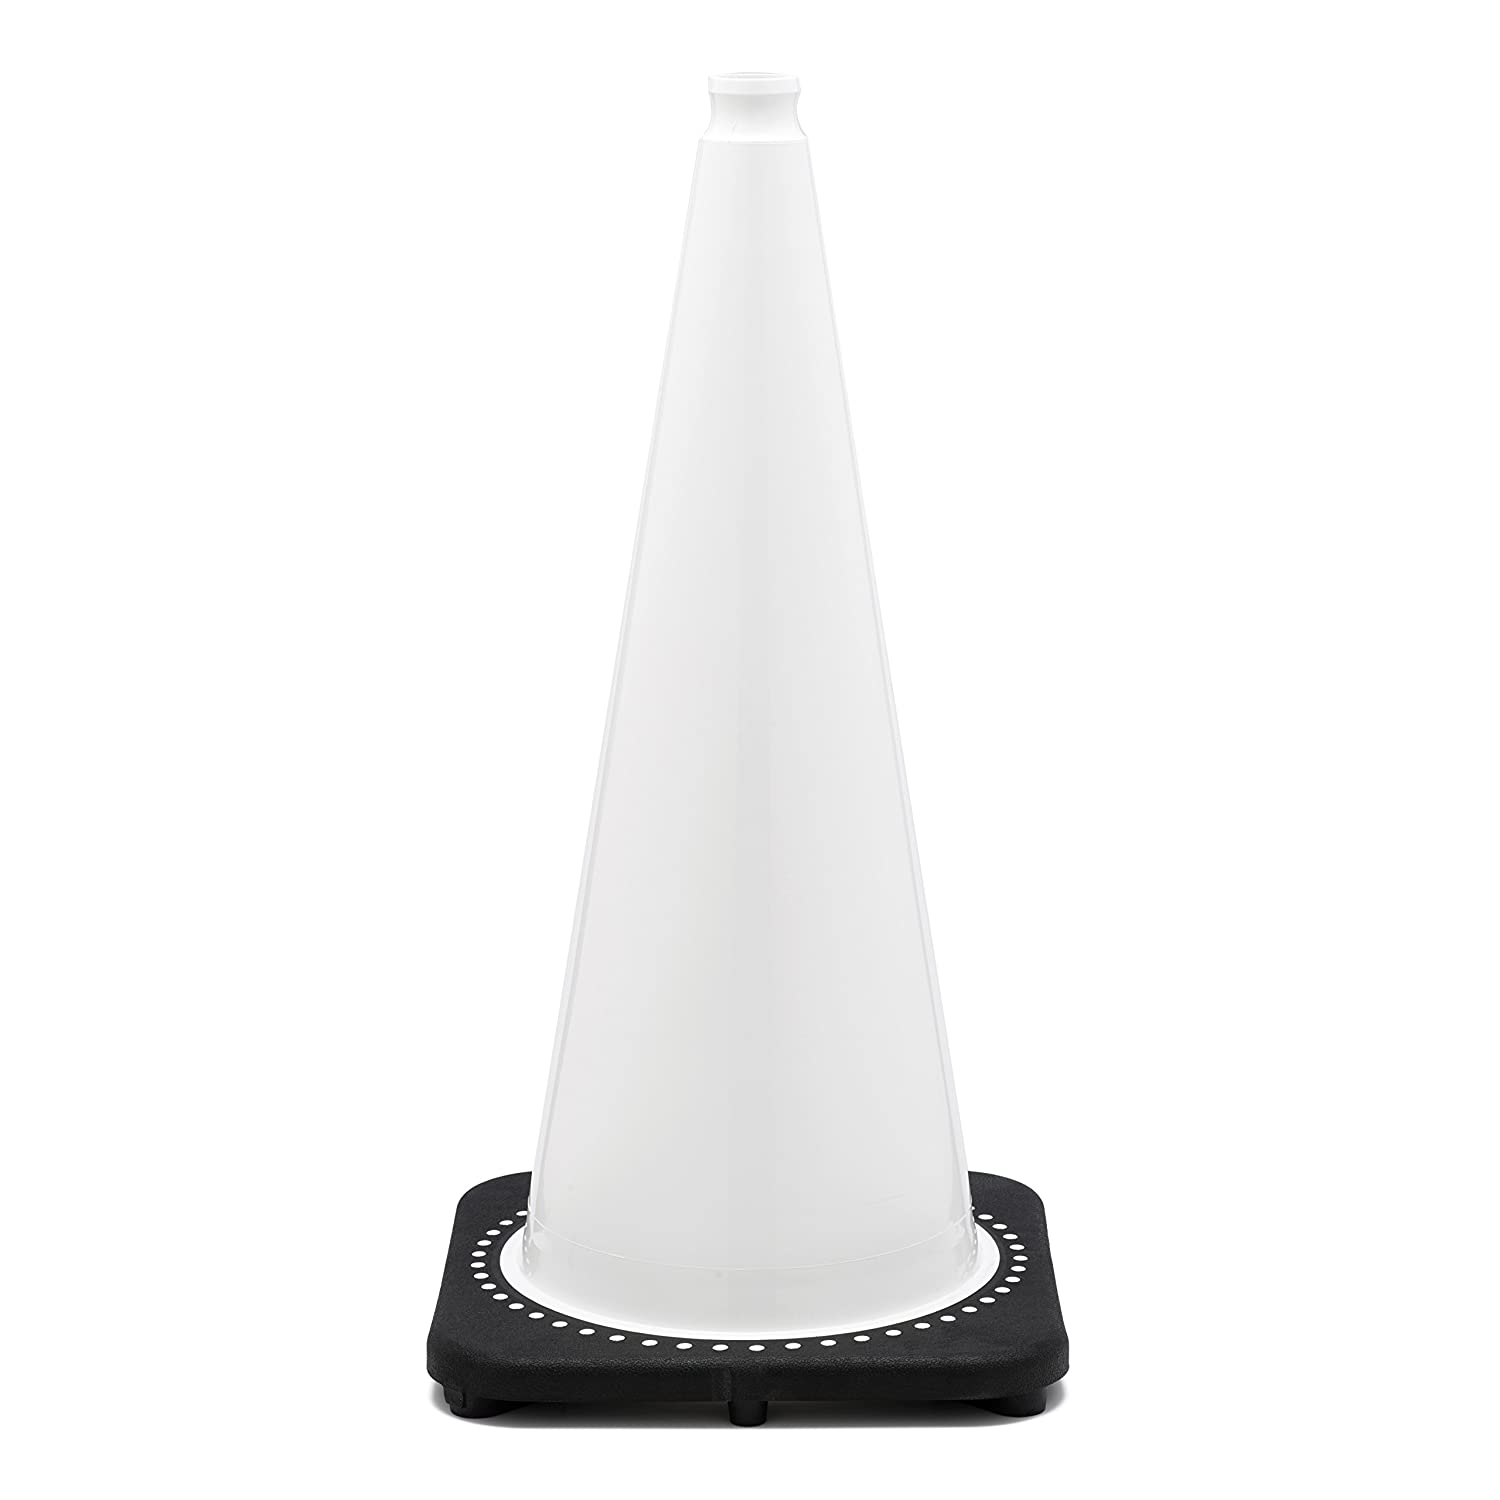 JBC Safety Plastic RS70032C-White+3M64 Revolution Series 28 Traffic Cone Wide Body with 6 and 4 Reflective Cone Collars White Color